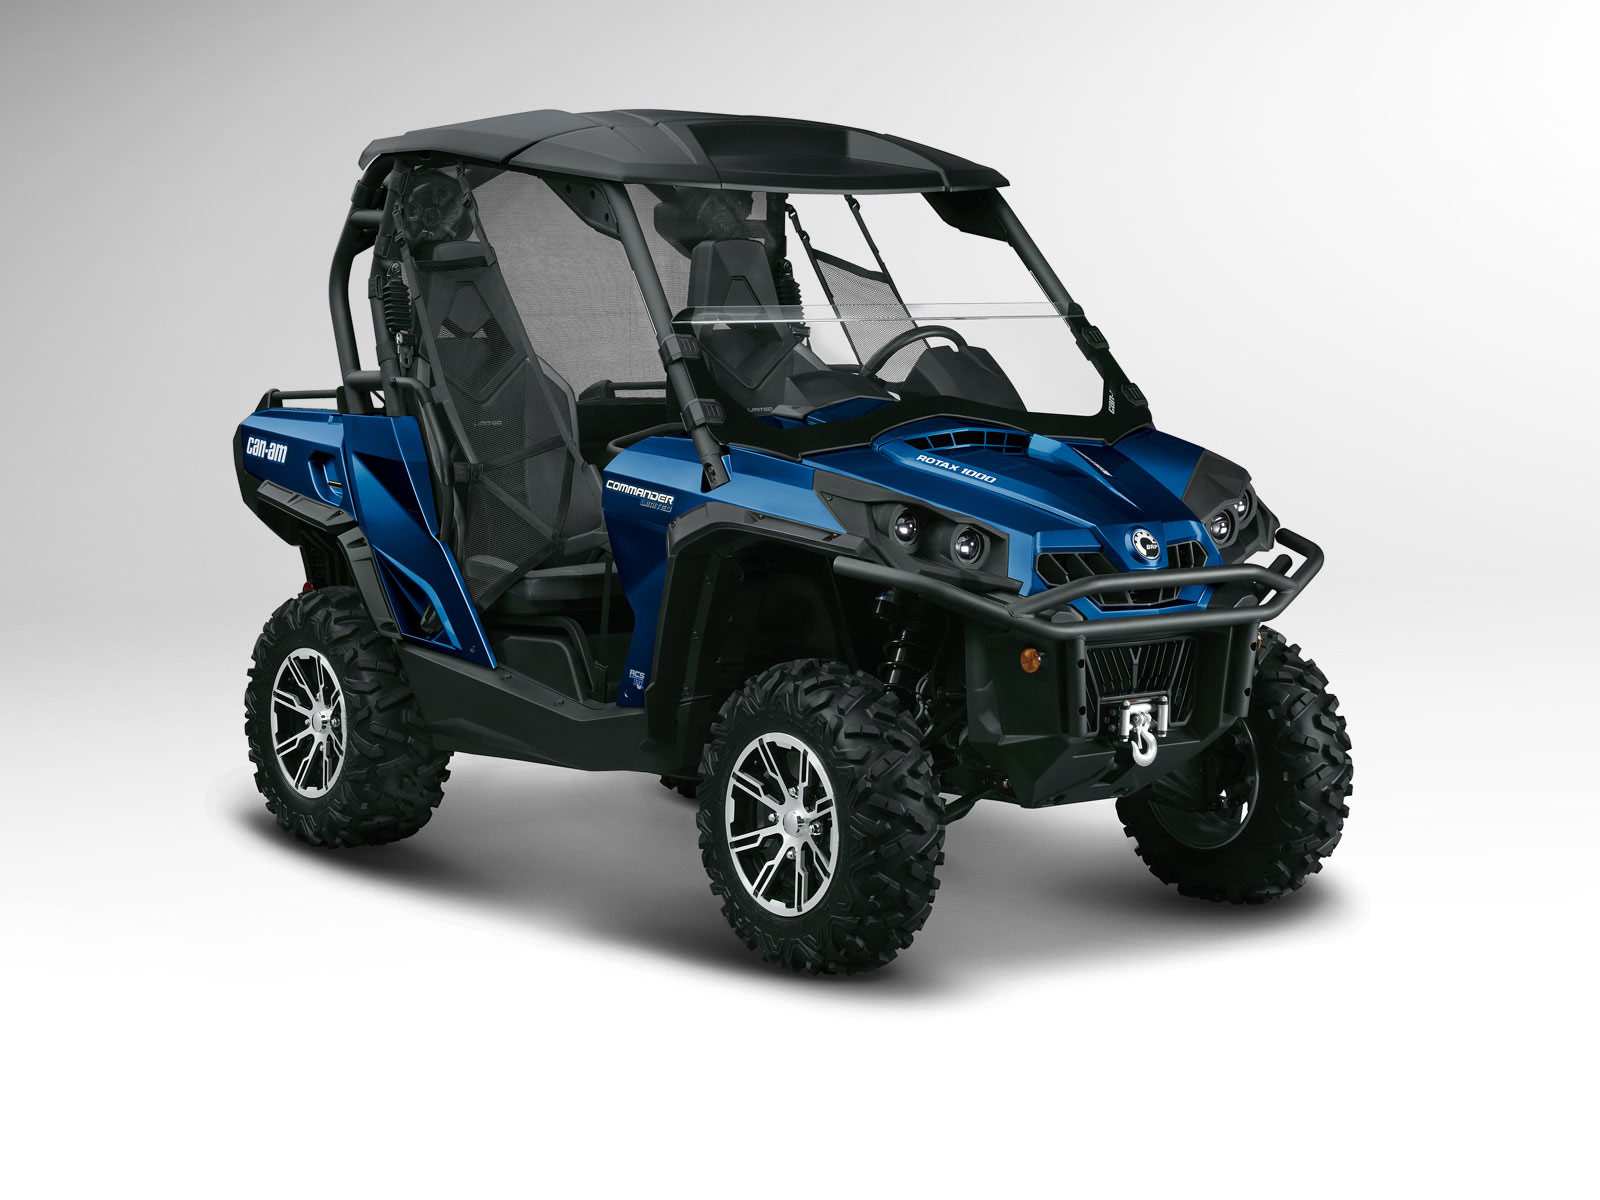 2012 Can-Am Commander 1000 Limited ATV pictures 3